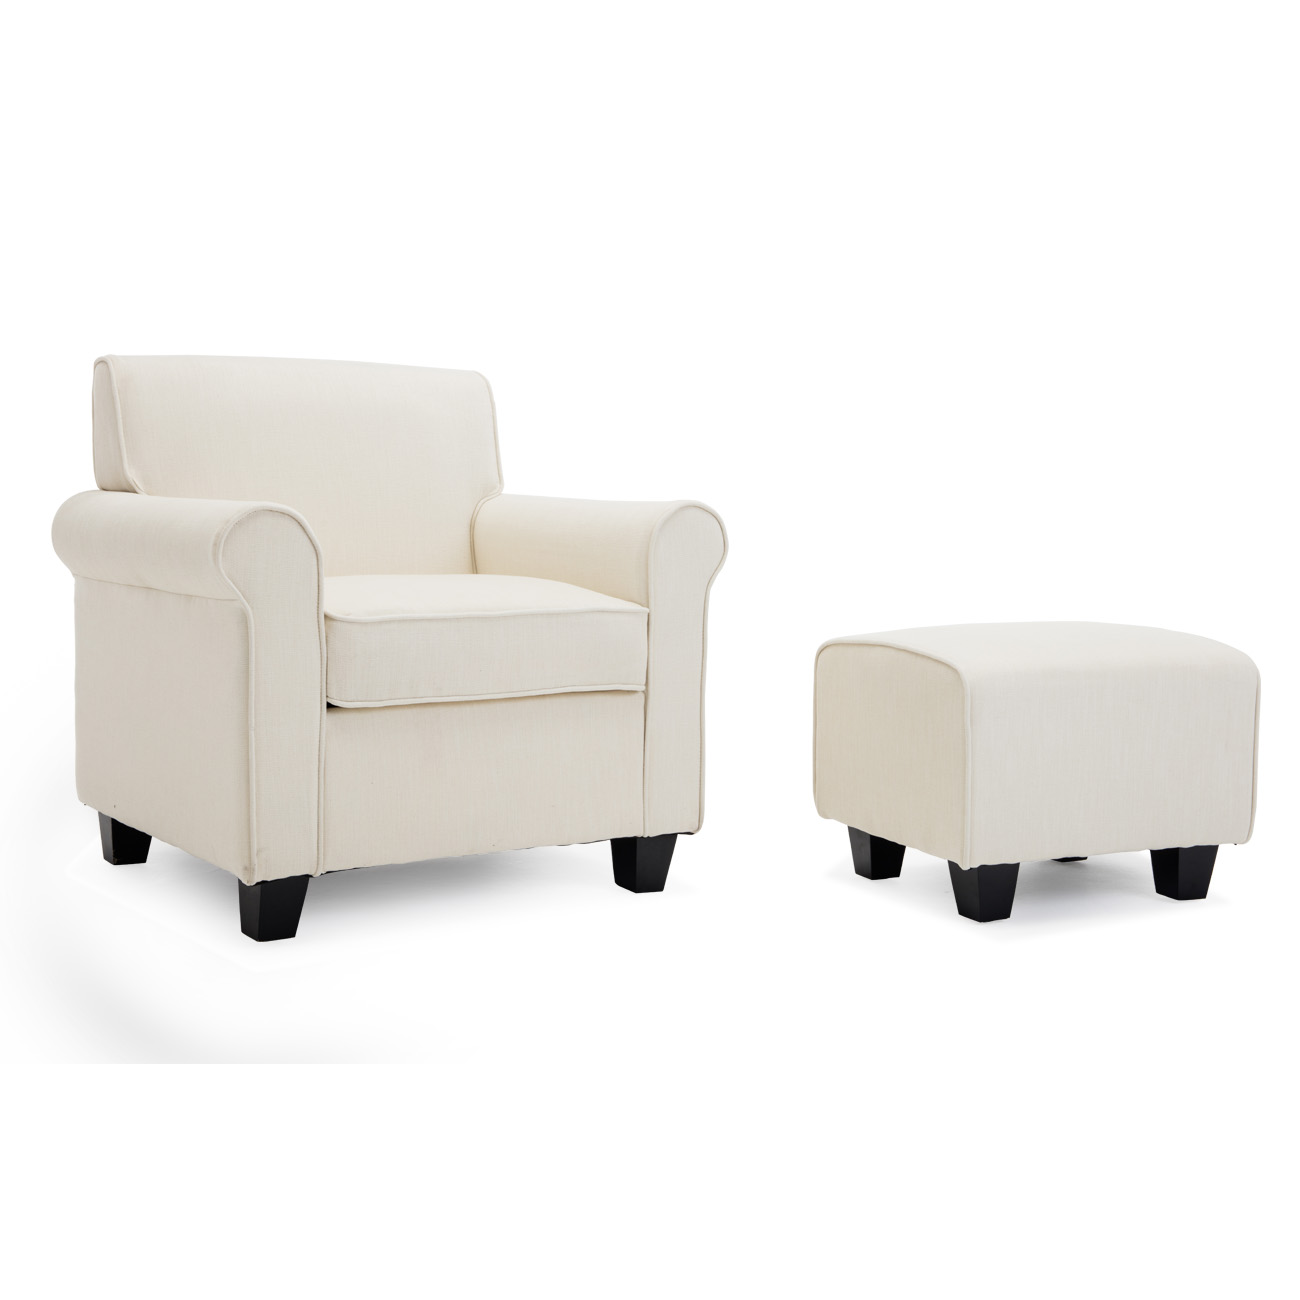 chairs and ottomans upholstered recovering chair cushions corners belleze audrey accented retro style ottoman wood legs living room dorm poly fiber foam walmart com